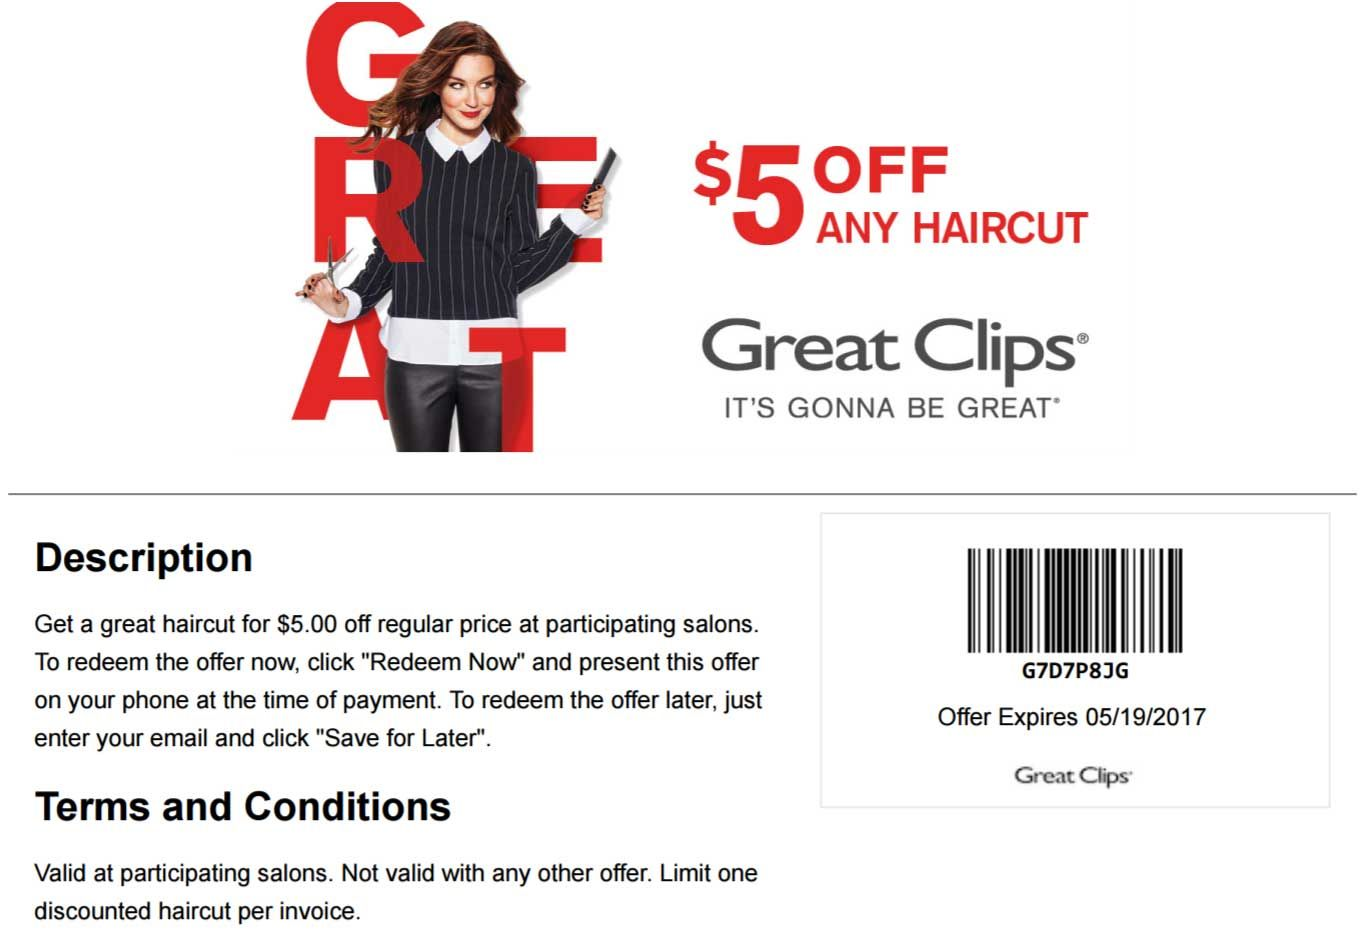 Pinned April 27th $5 off a haircut at GreatClips coupon